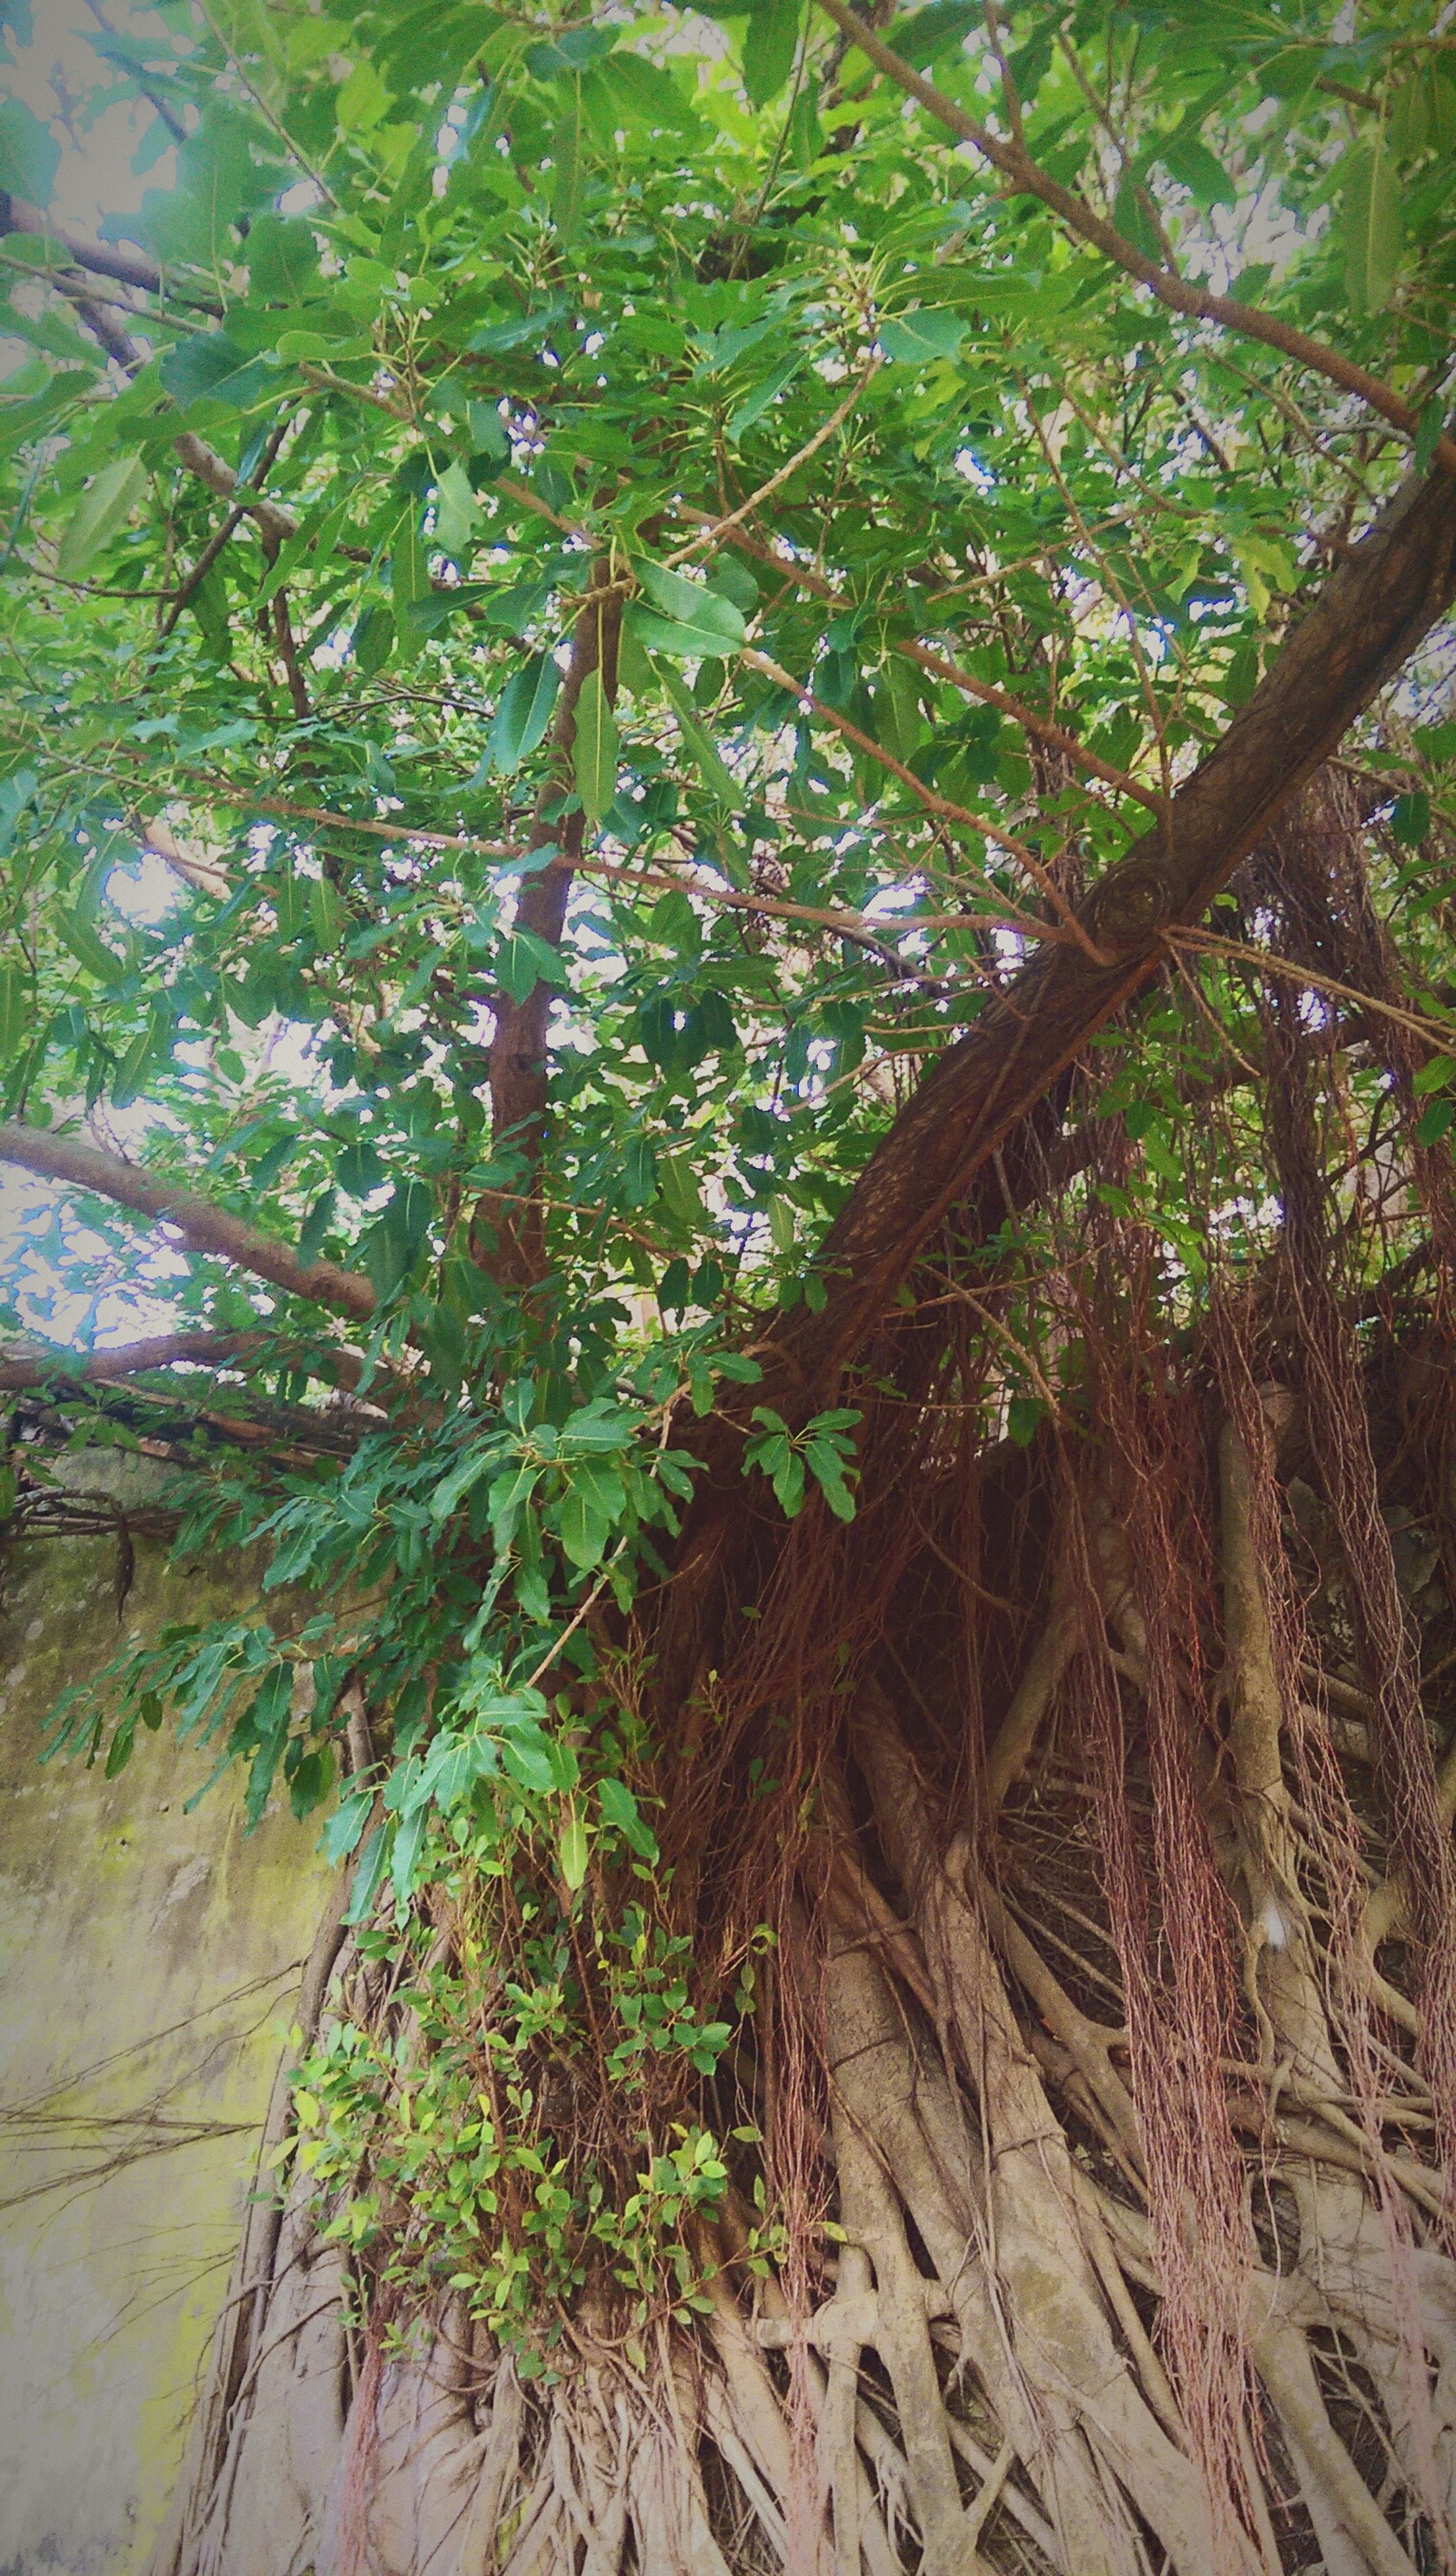 growth, tree, nature, green color, no people, beauty in nature, low angle view, leaf, outdoors, day, branch, tranquility, backgrounds, freshness, close-up